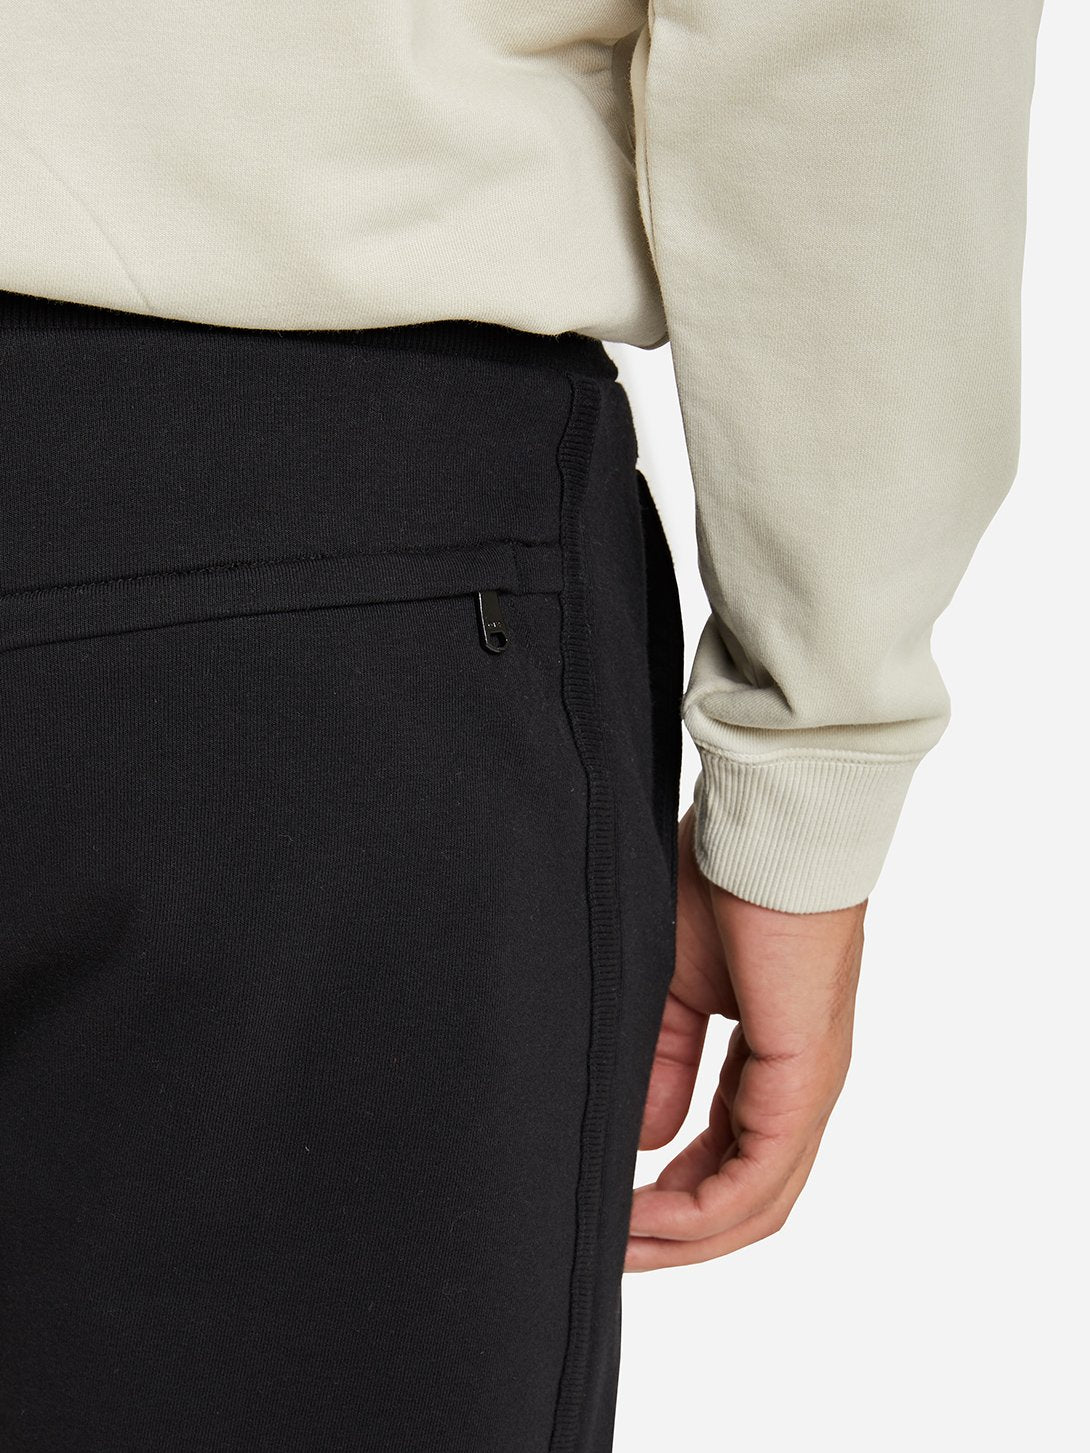 JET BLACK sweatpants for men ons clothing bklyn jogger